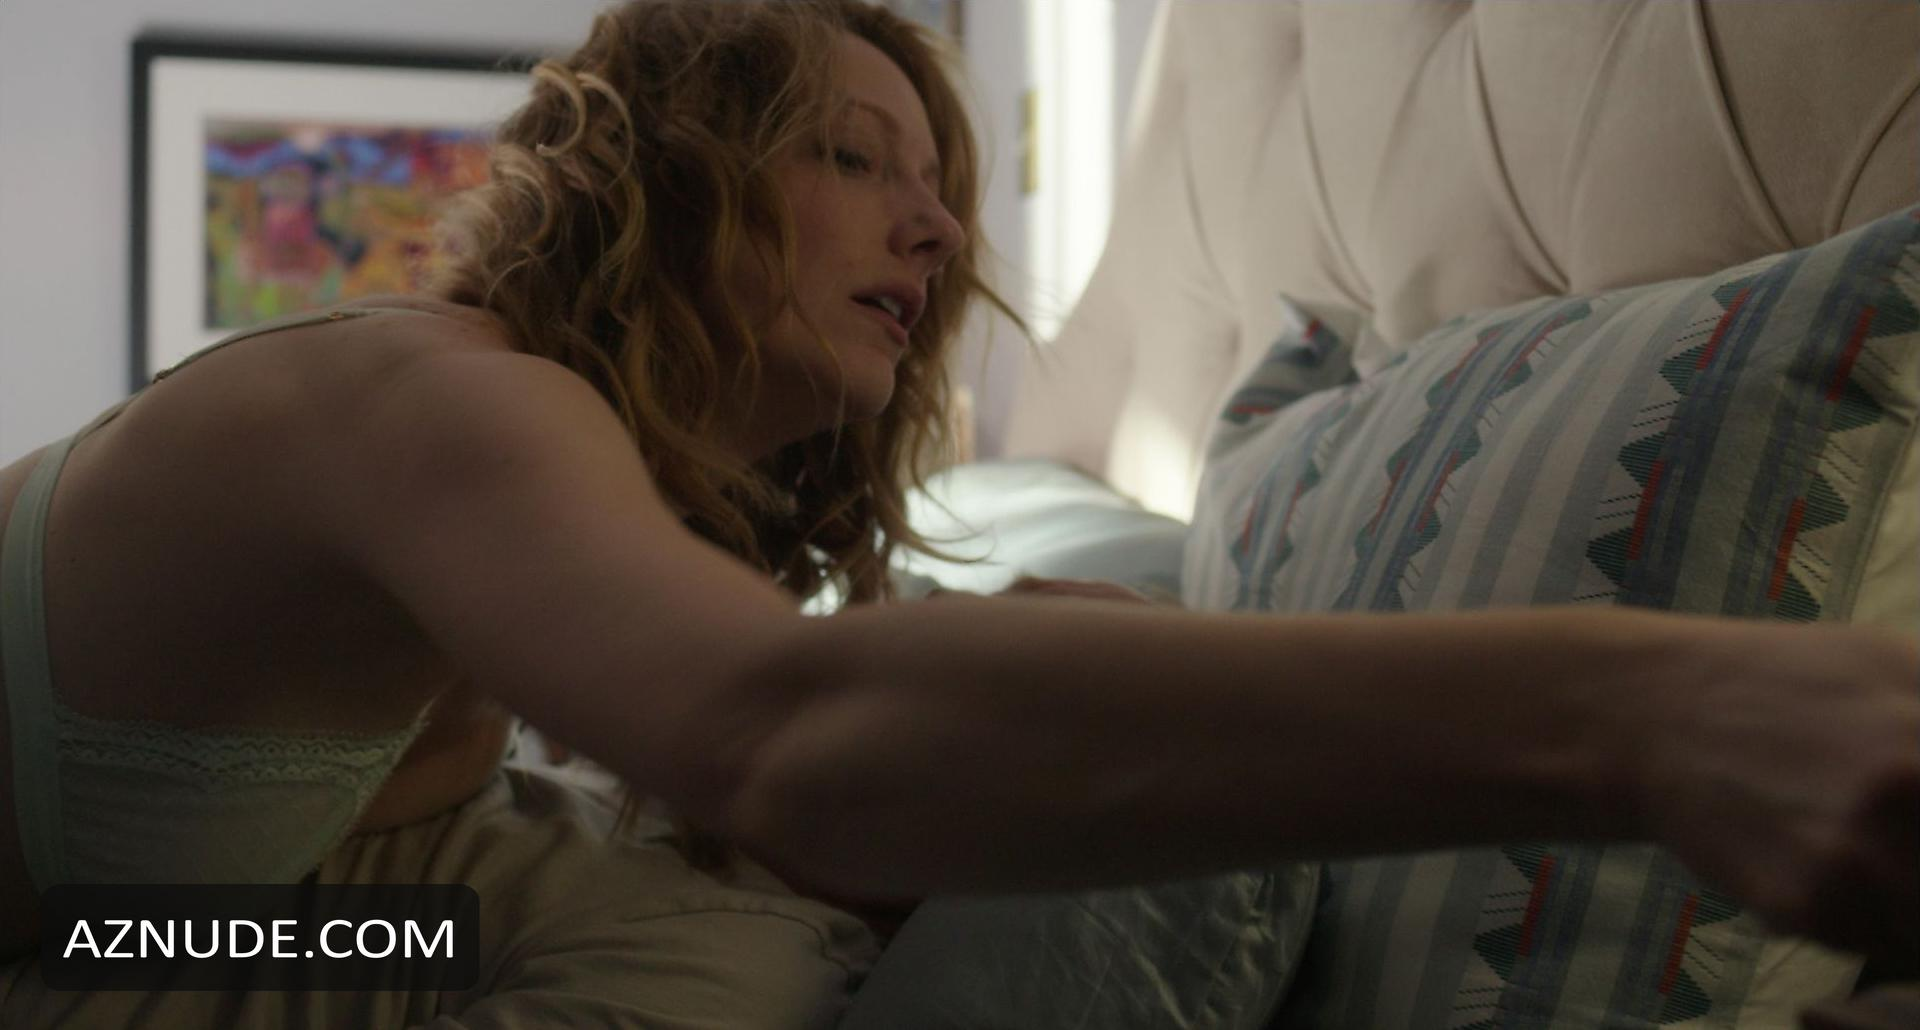 Remarkable, valuable nude pictures of judy greer